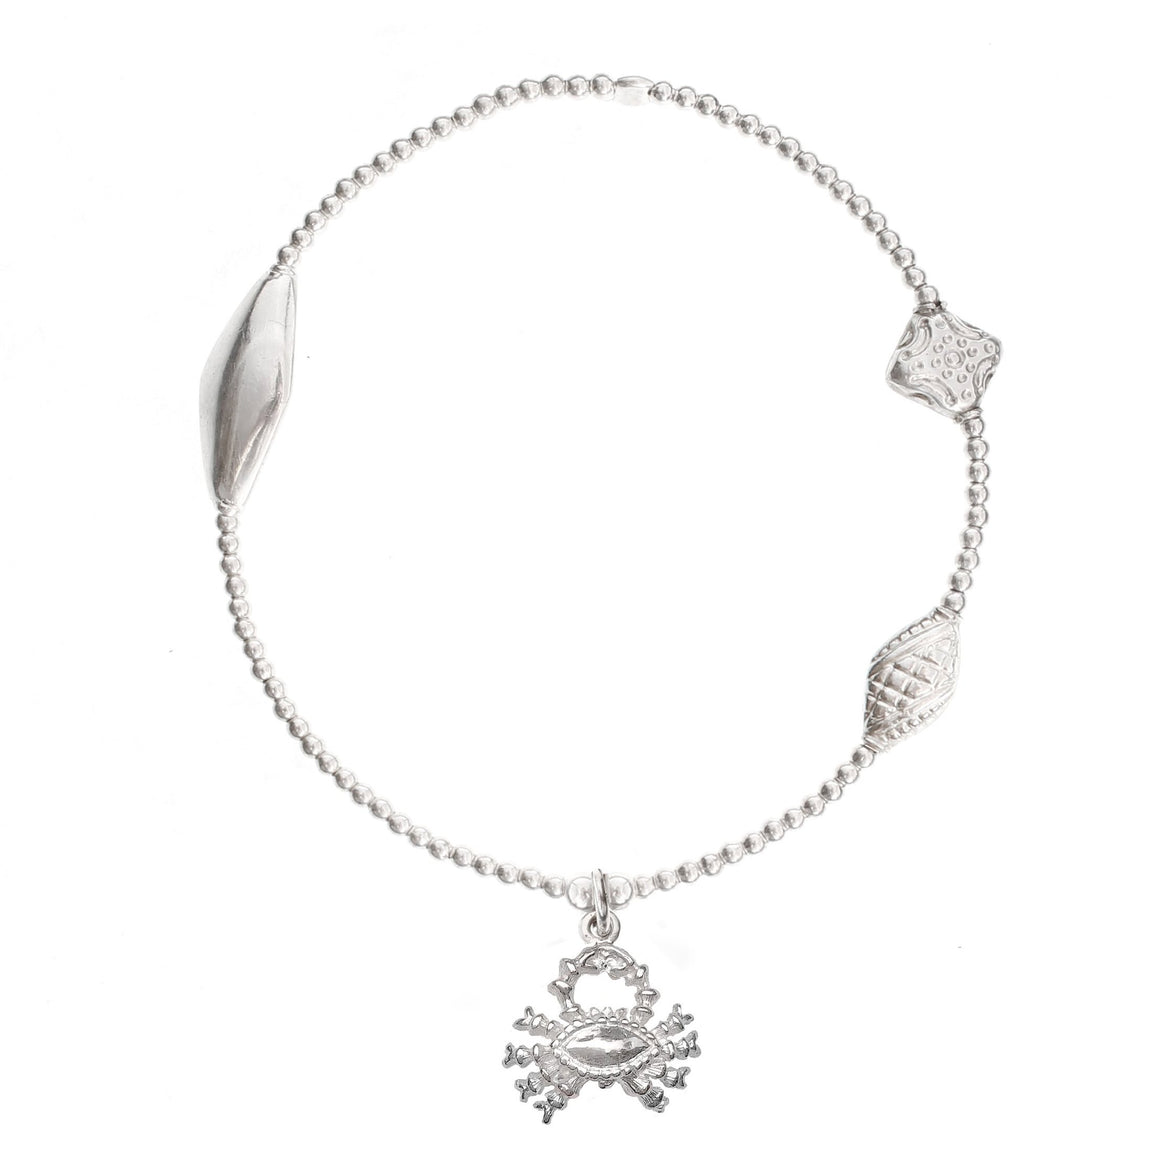 Crab Charm Bracelet in Sterling Silver